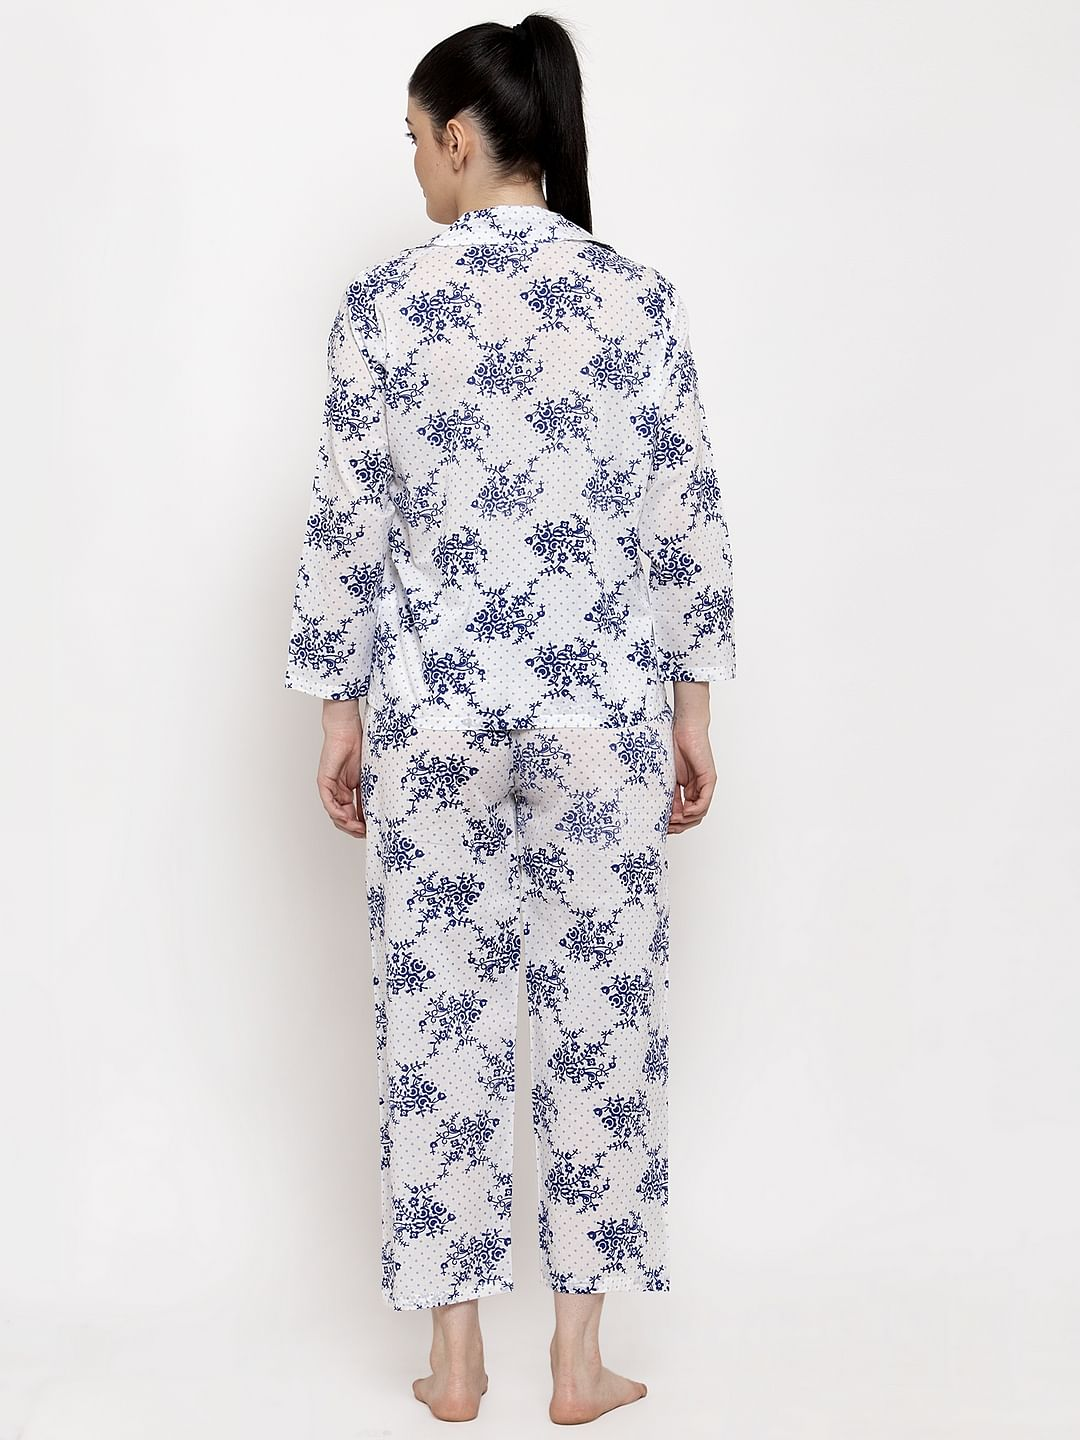 Secret Wish Women's White-Blue Cotton Floral Print Nightsuit